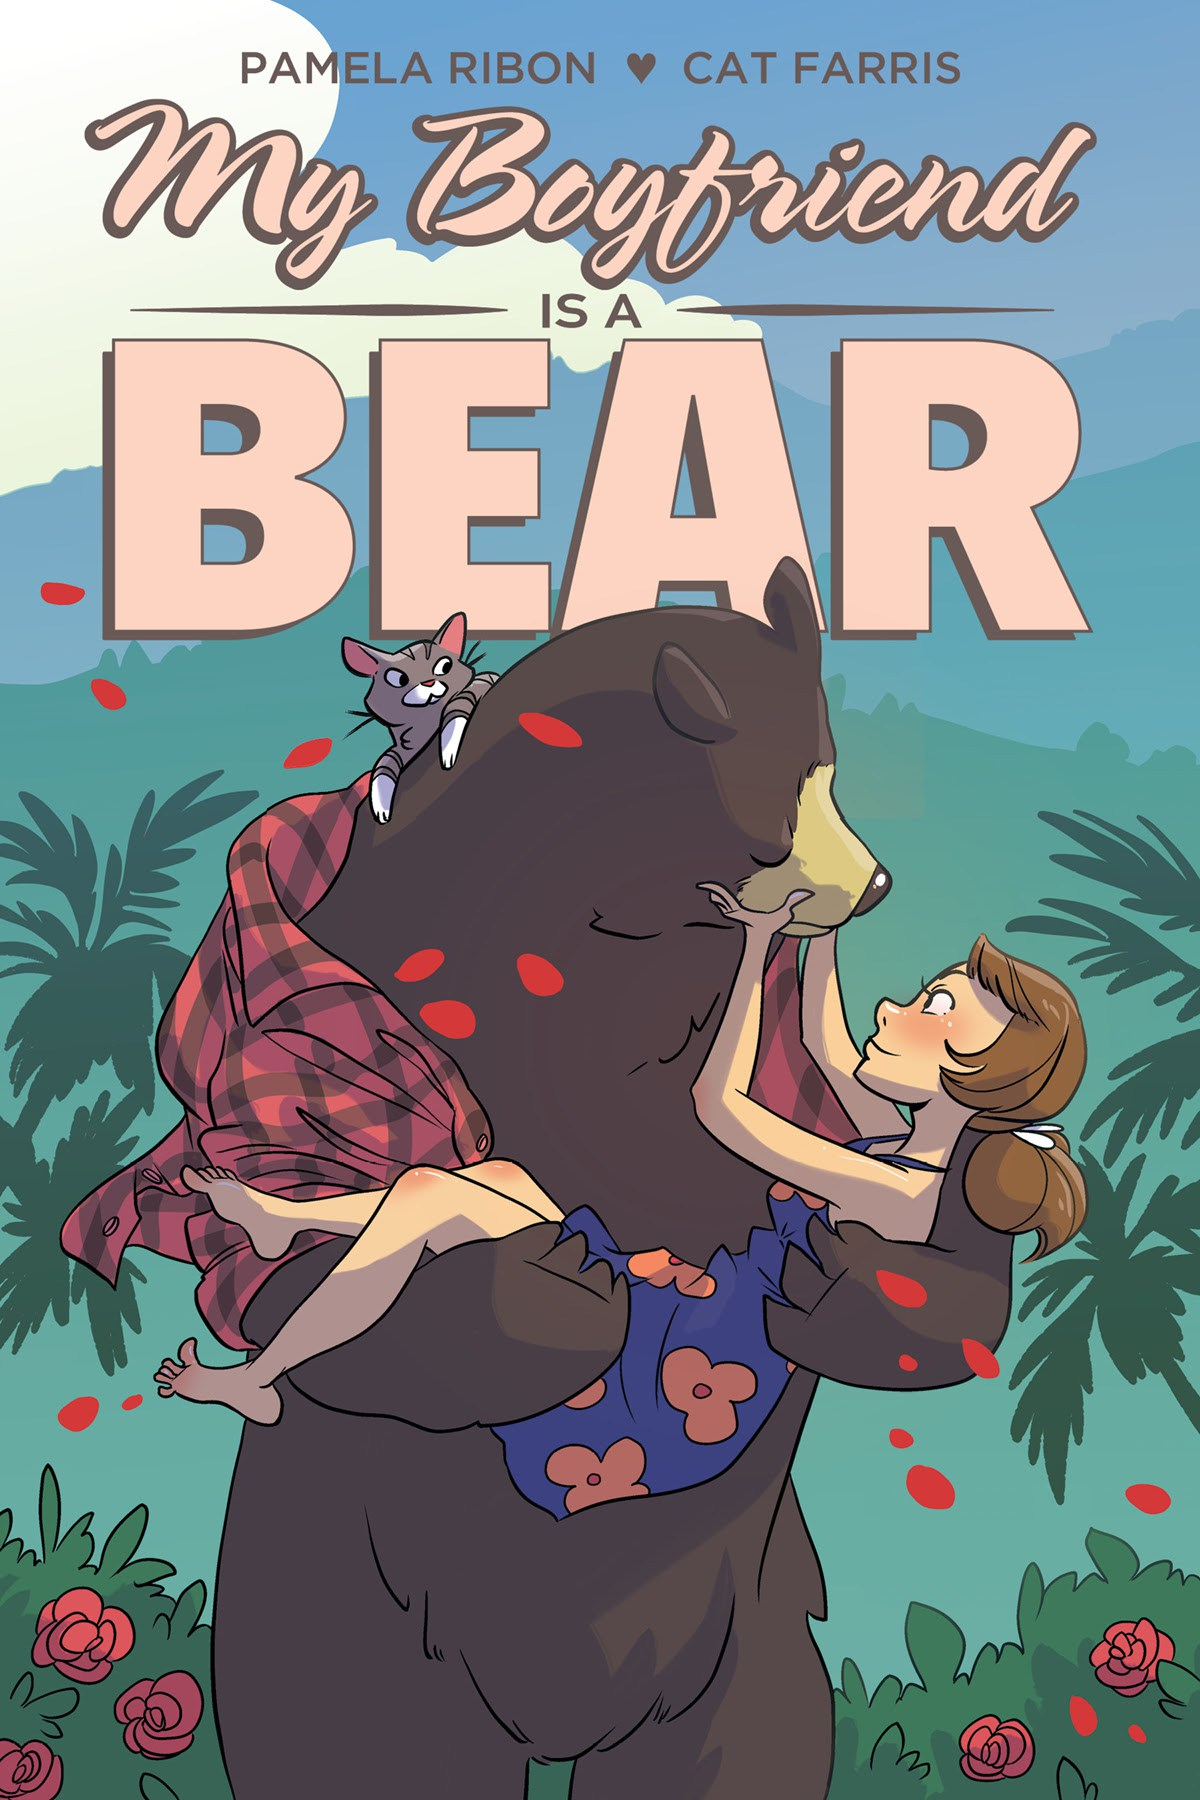 'My Boyfriend is a Bear' is a fresh romantic comedy that shirks all the tired tropes of the genre